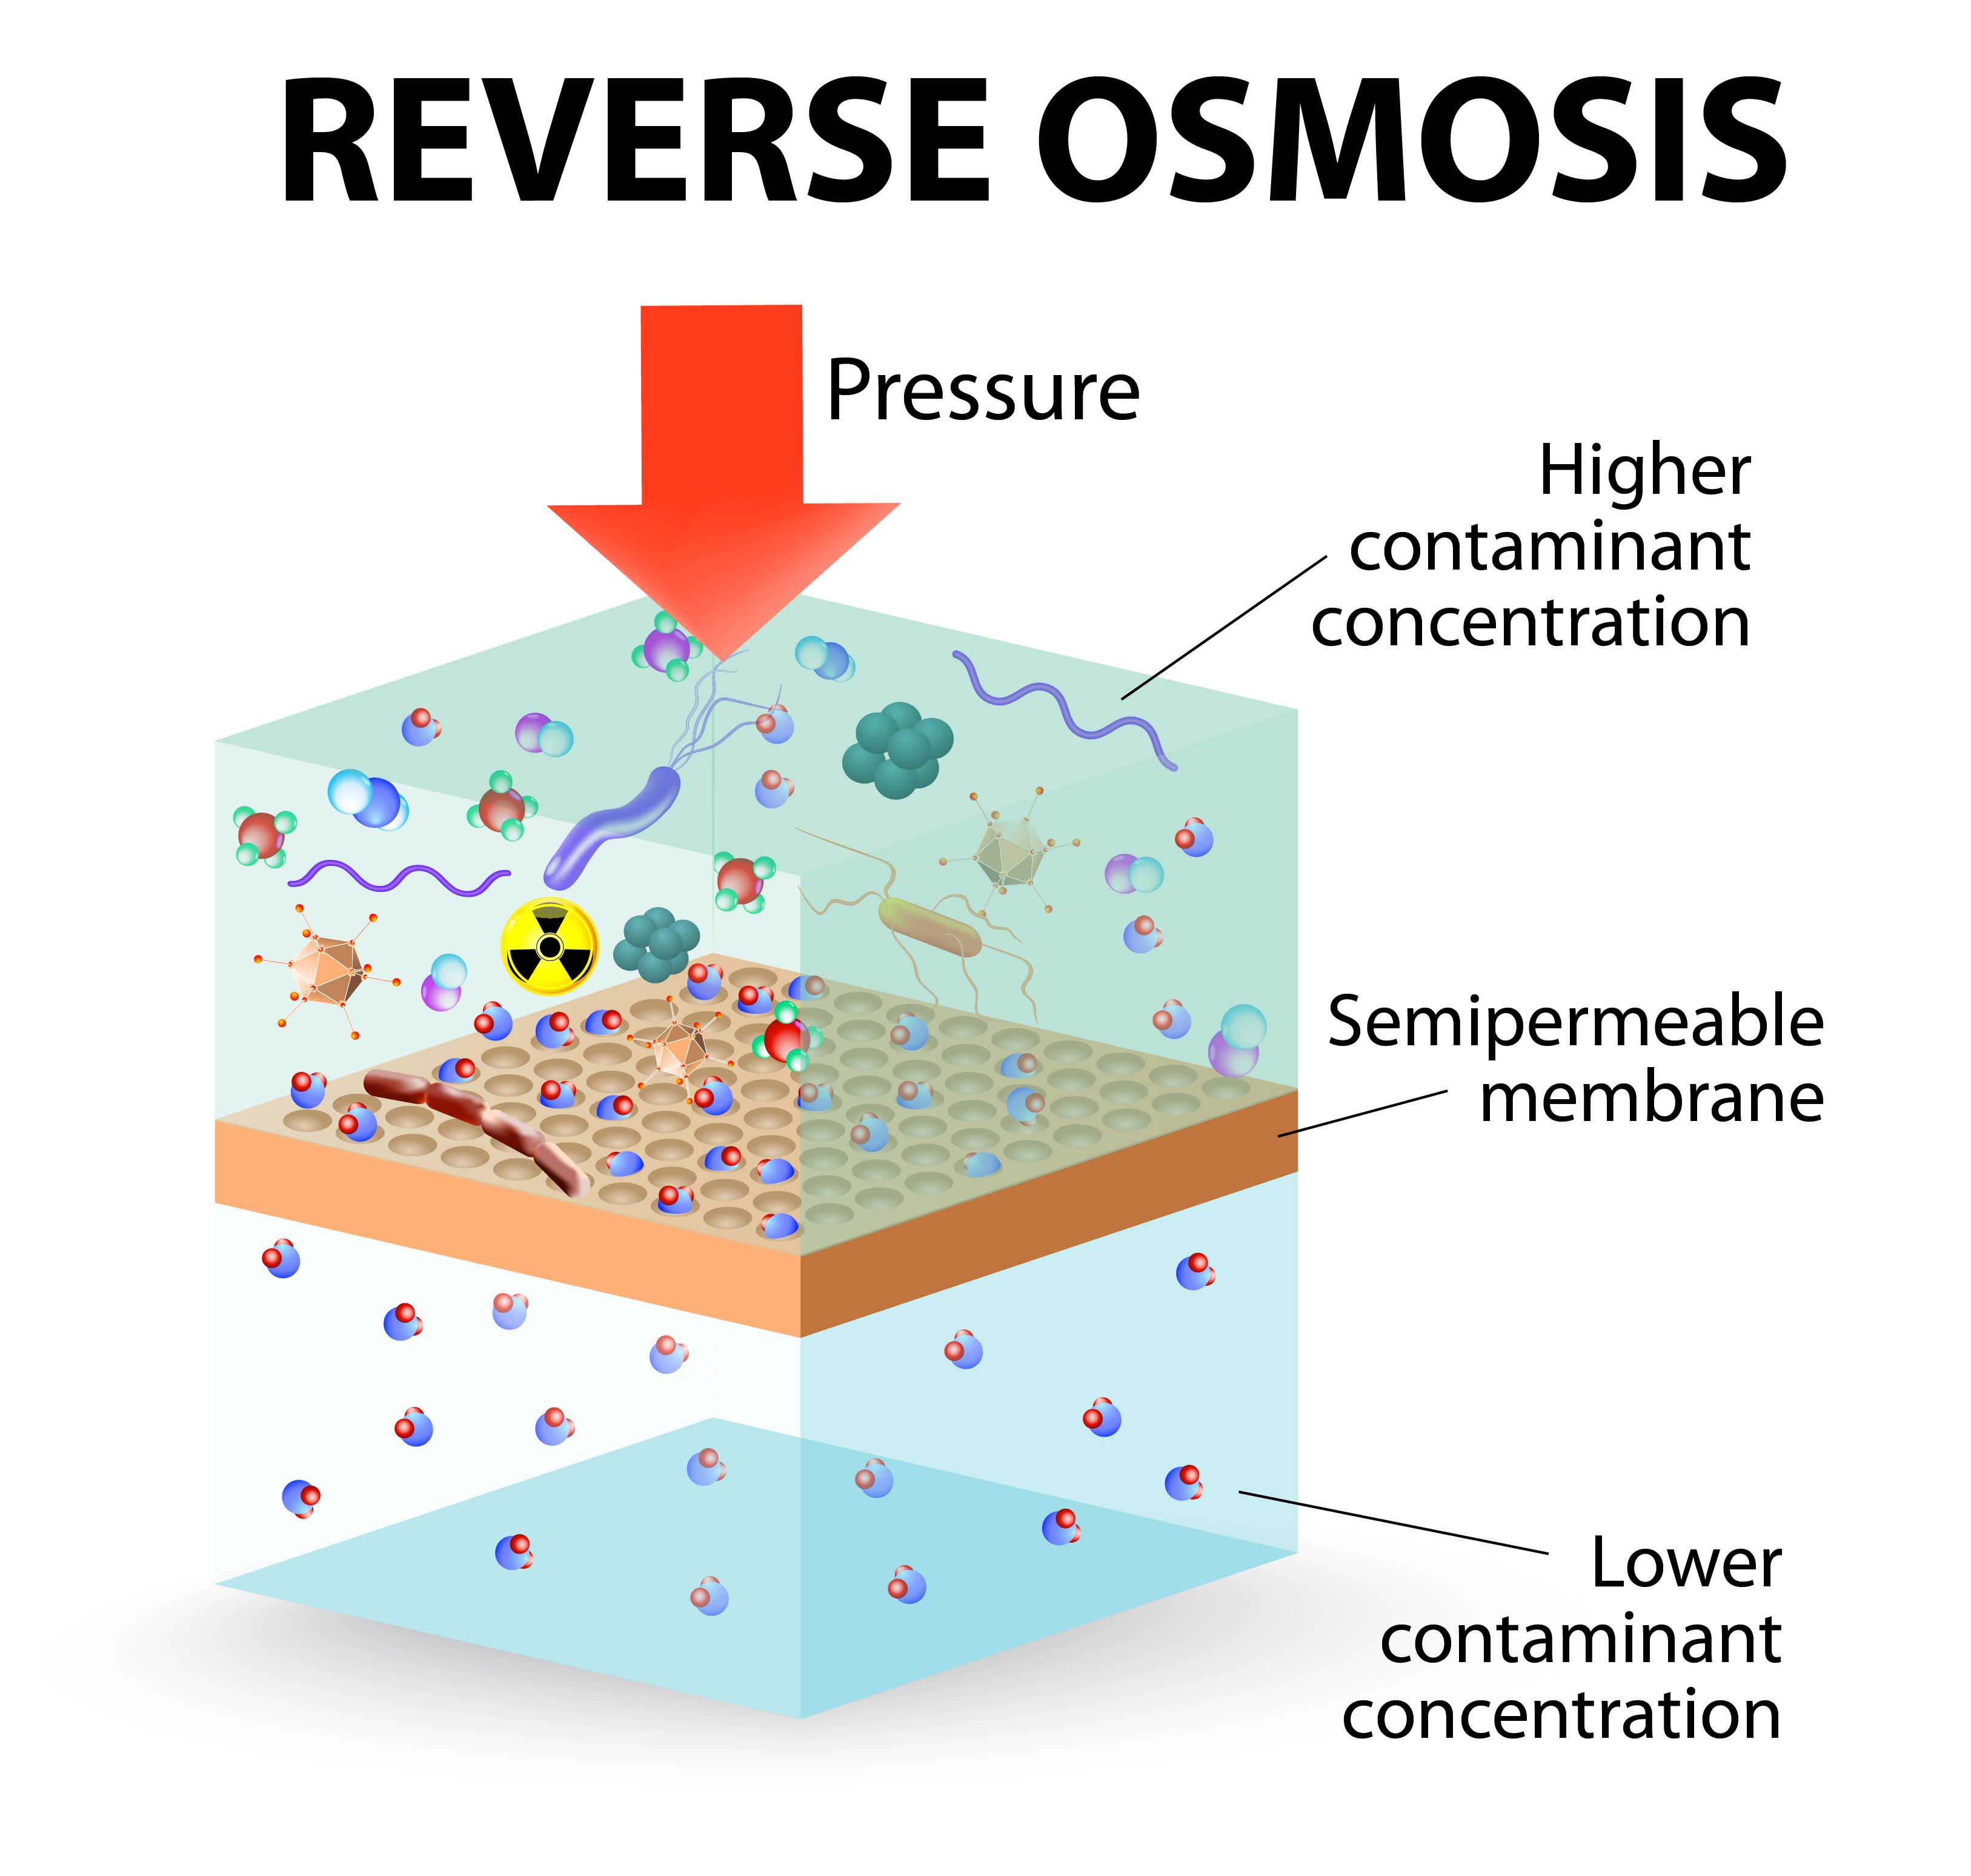 How Does a Reverse Osmosis Drinking System Work